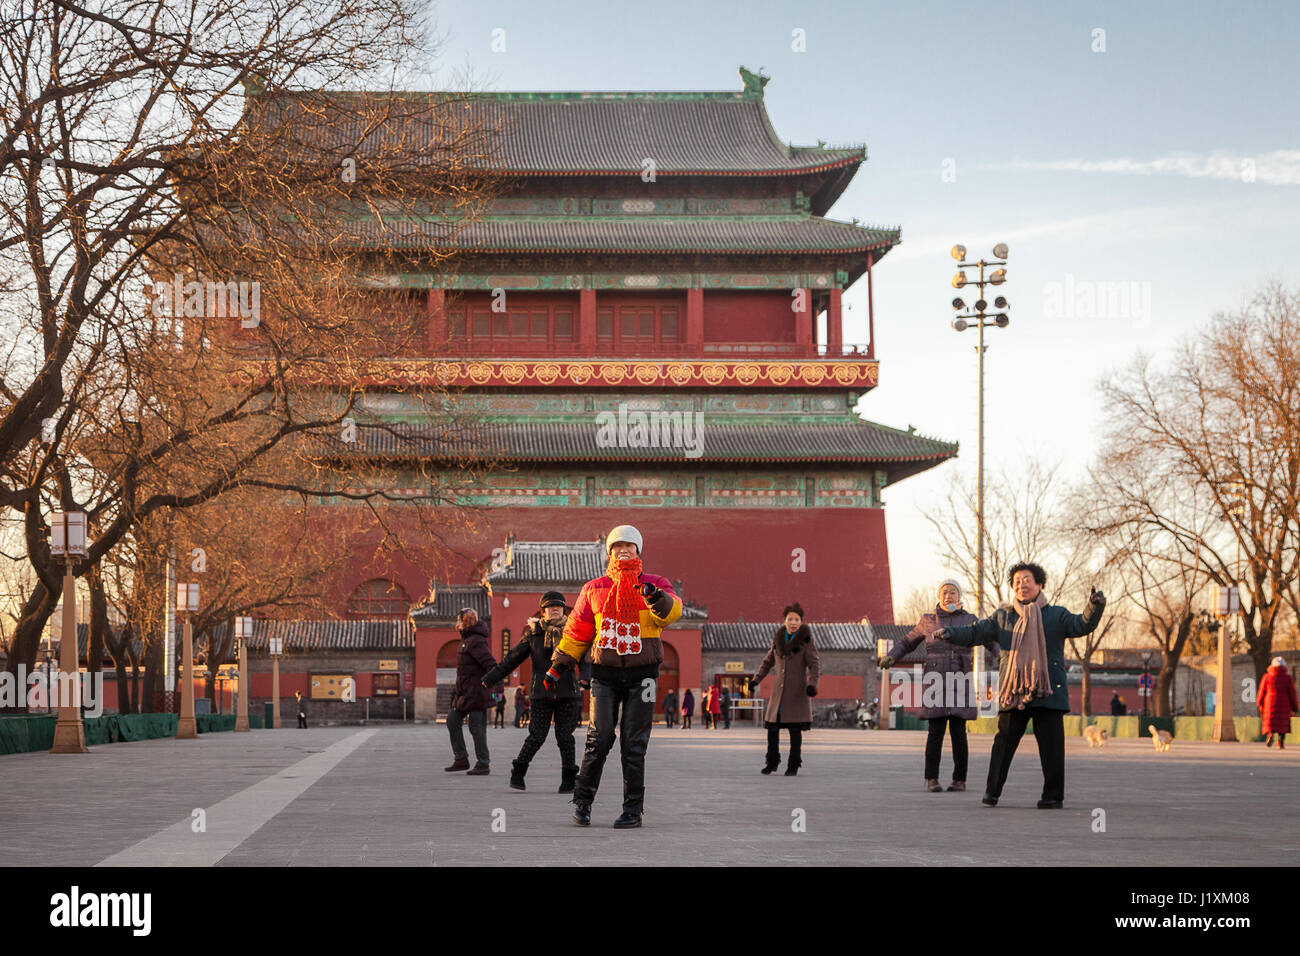 Early morning exercises at the square near the Drum Tower, Beijing, China. The tower is a later Ming dynasty version - Stock Image